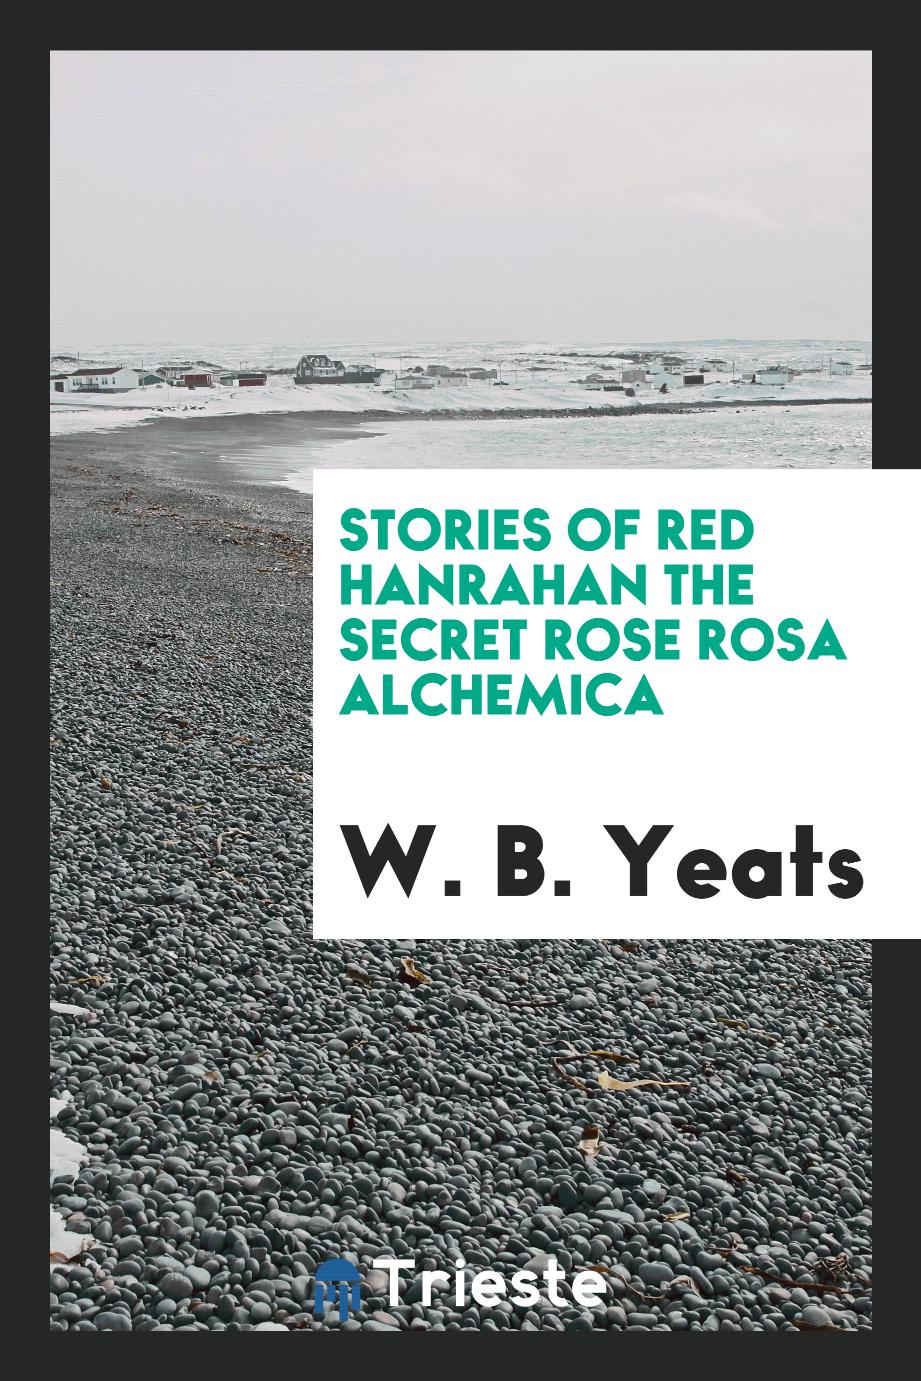 Stories of Red Hanrahan the secret rose Rosa alchemica